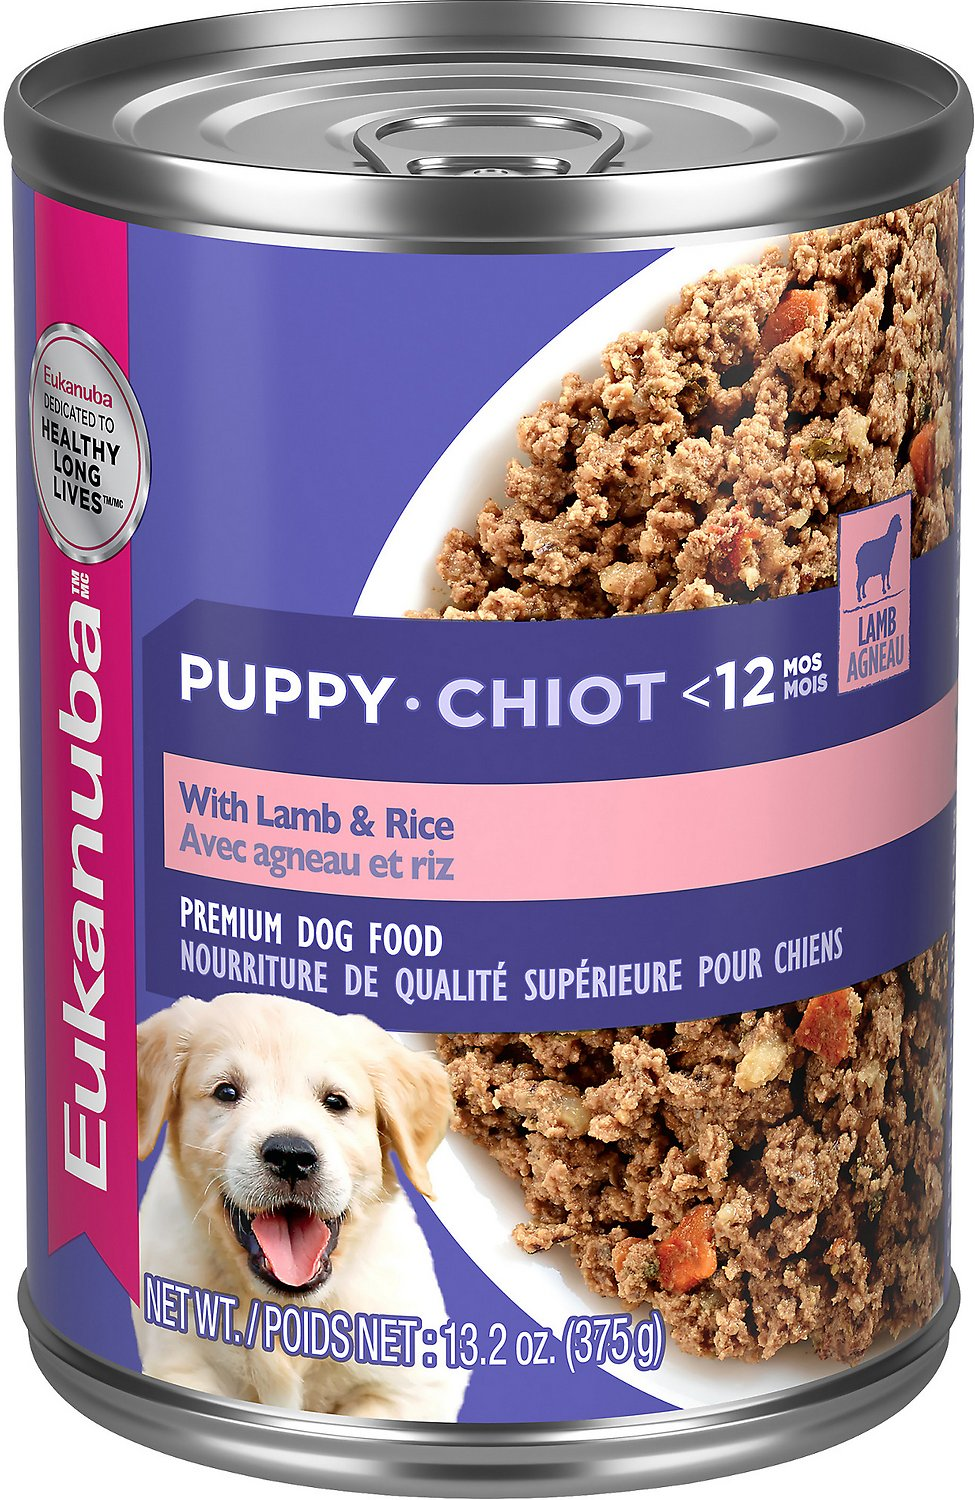 Eukanuba Puppy Food >> Eukanuba Puppy Lamb & Rice Formula Canned Dog Food, 13.2-oz, case of 12 - Chewy.com